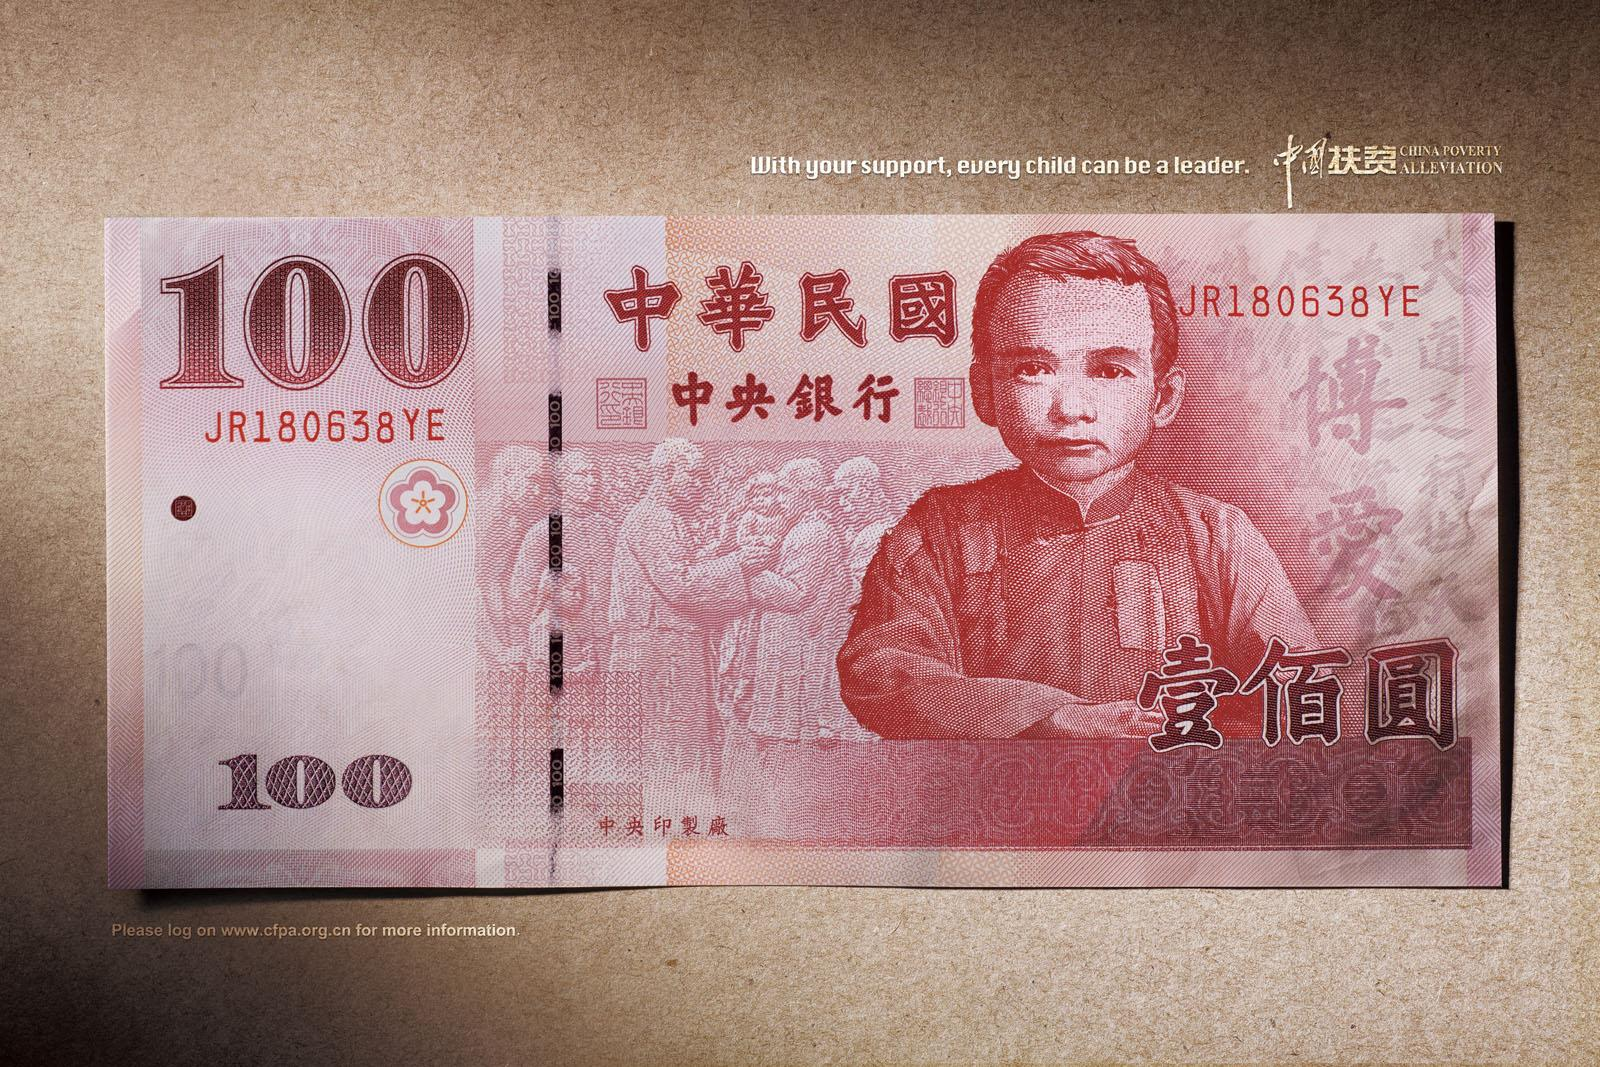 China Foundation for Poverty Alleviation Print Ad -  Politician